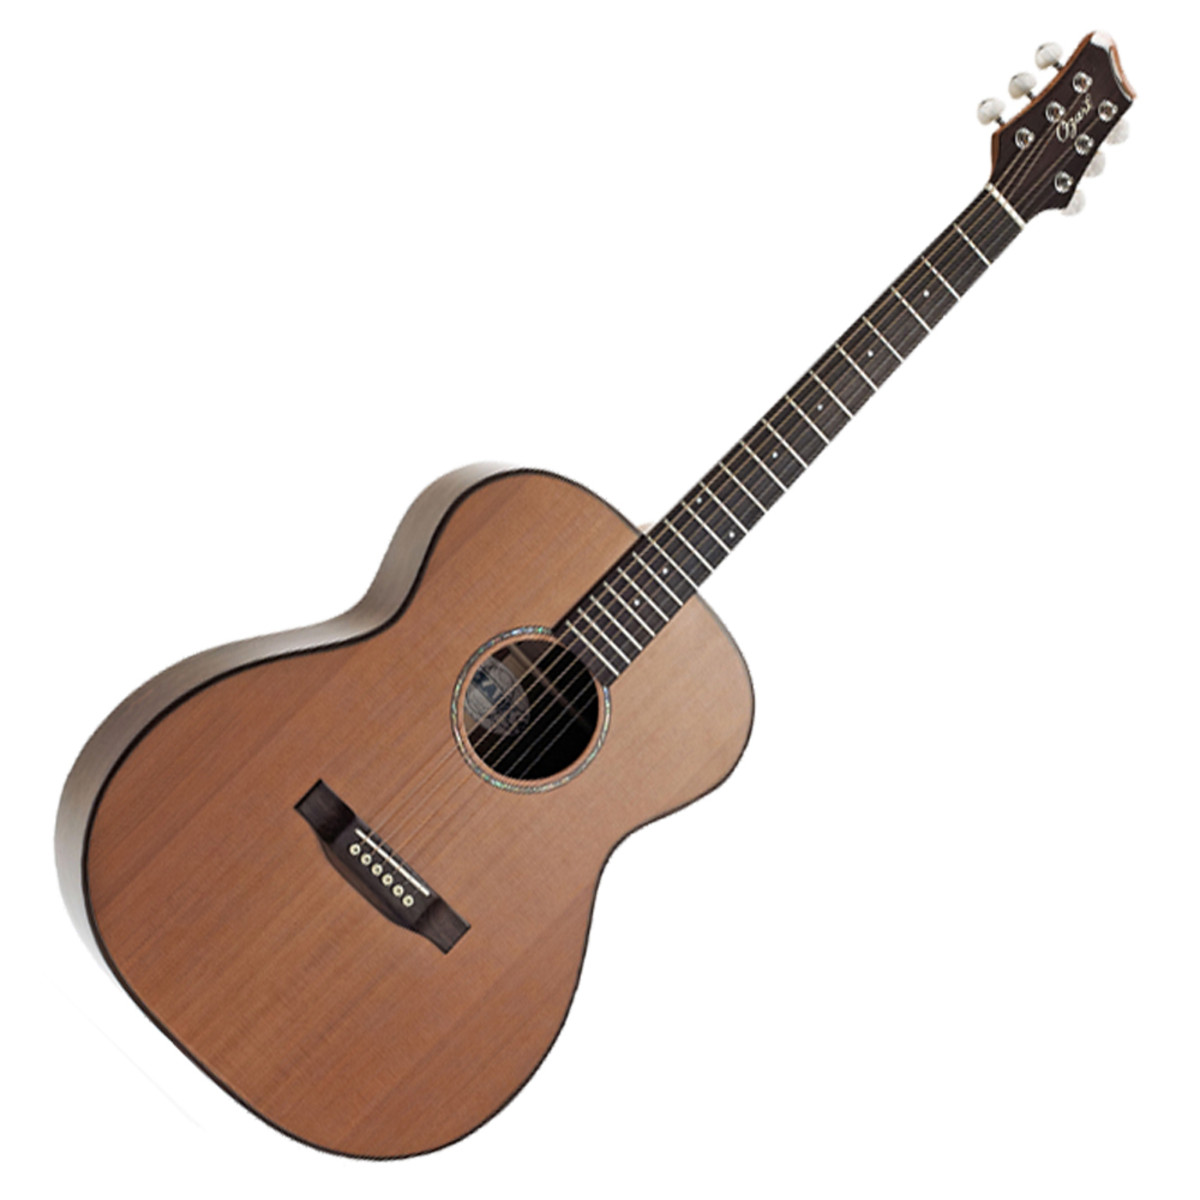 ozark small body acoustic folk guitar natural at gear4music. Black Bedroom Furniture Sets. Home Design Ideas